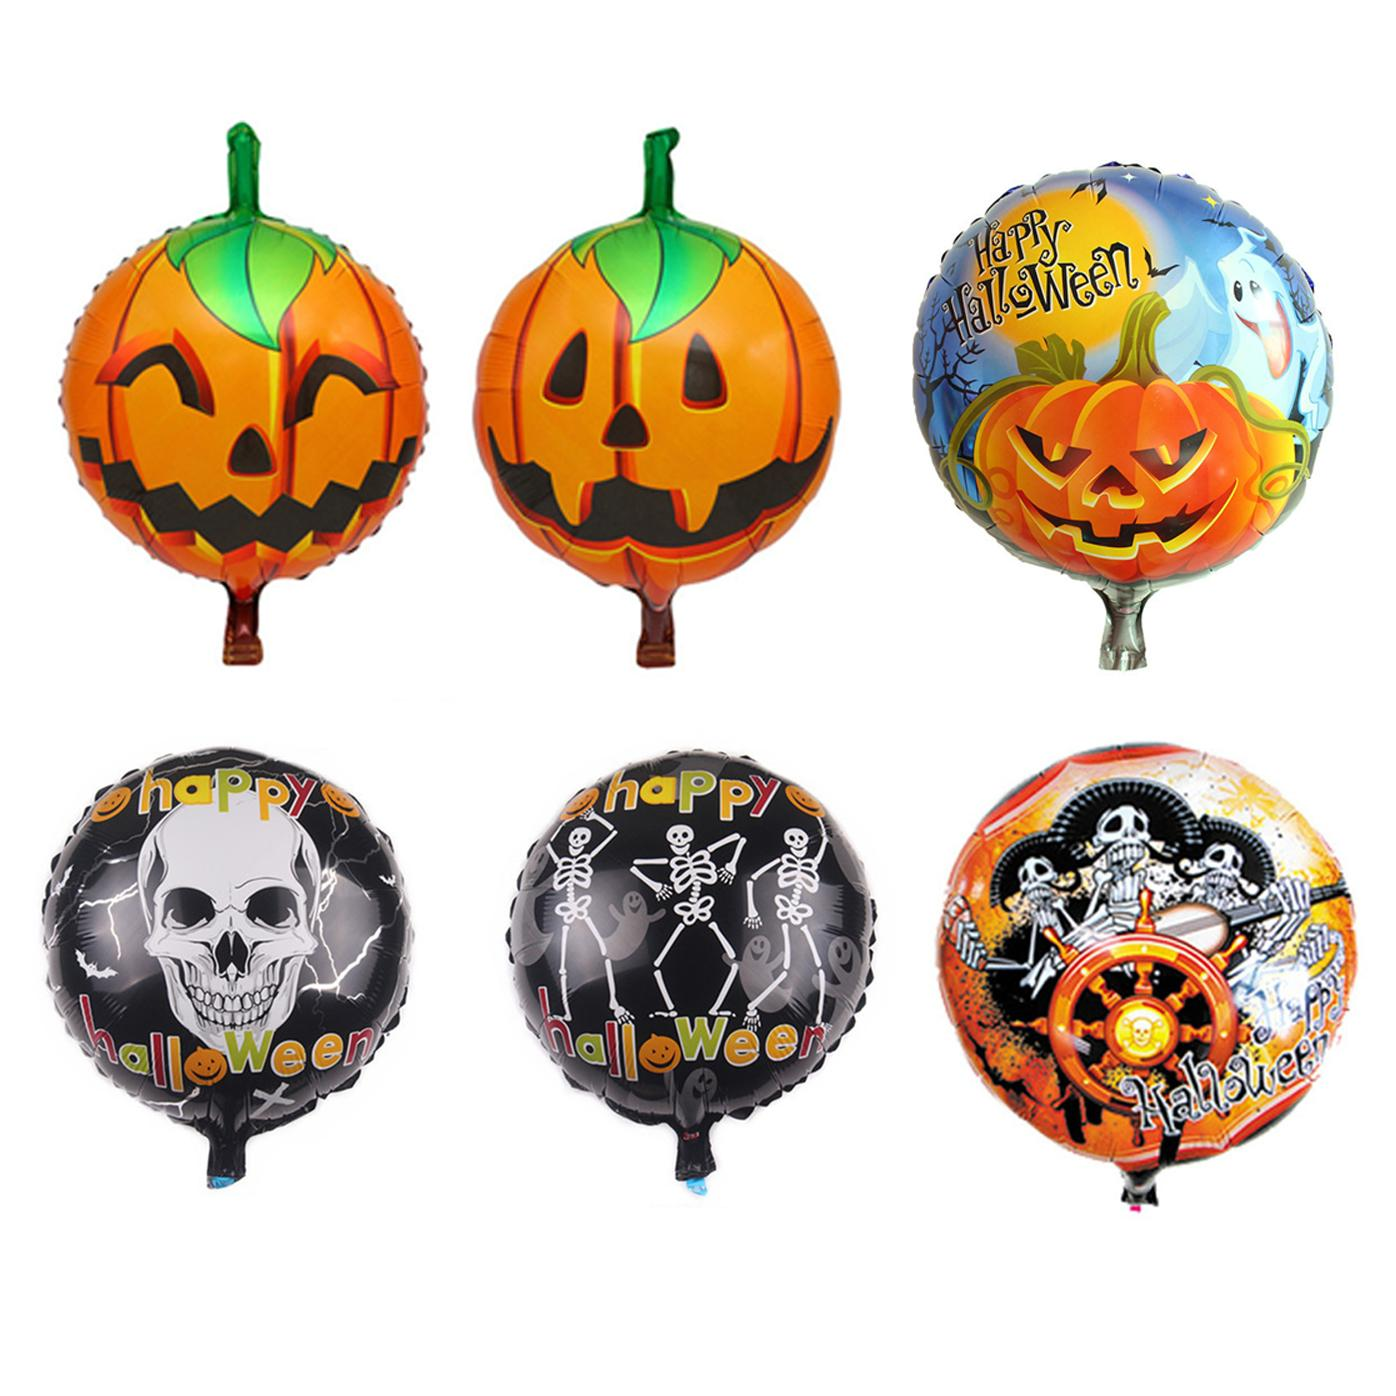 45x45cm Happy Halloween zucca fantasma figura del cranio stagnola Balloons per Halloween Party Favor rifornimenti elio Globos Decorazione